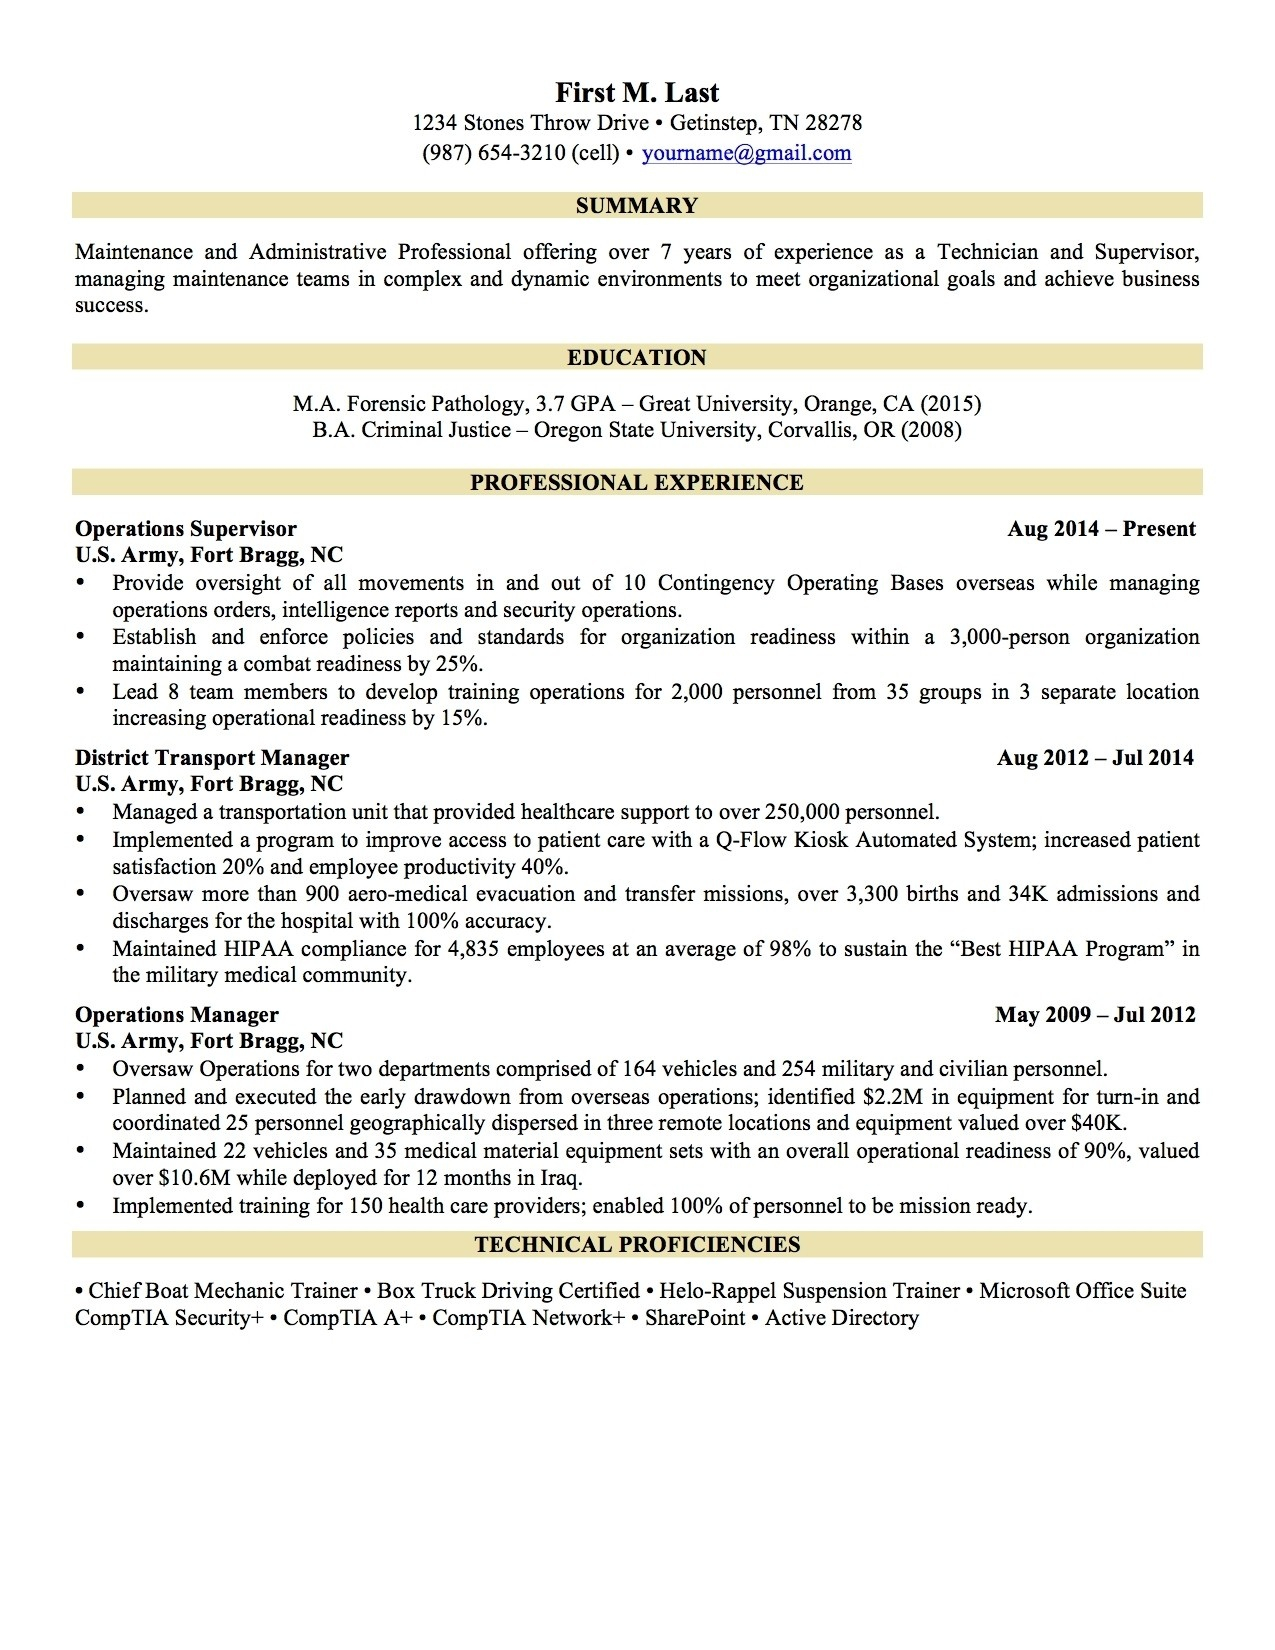 Master039s Degree Resume Sample - Resume Examples Professional Experience Inspirational Fresh Grapher